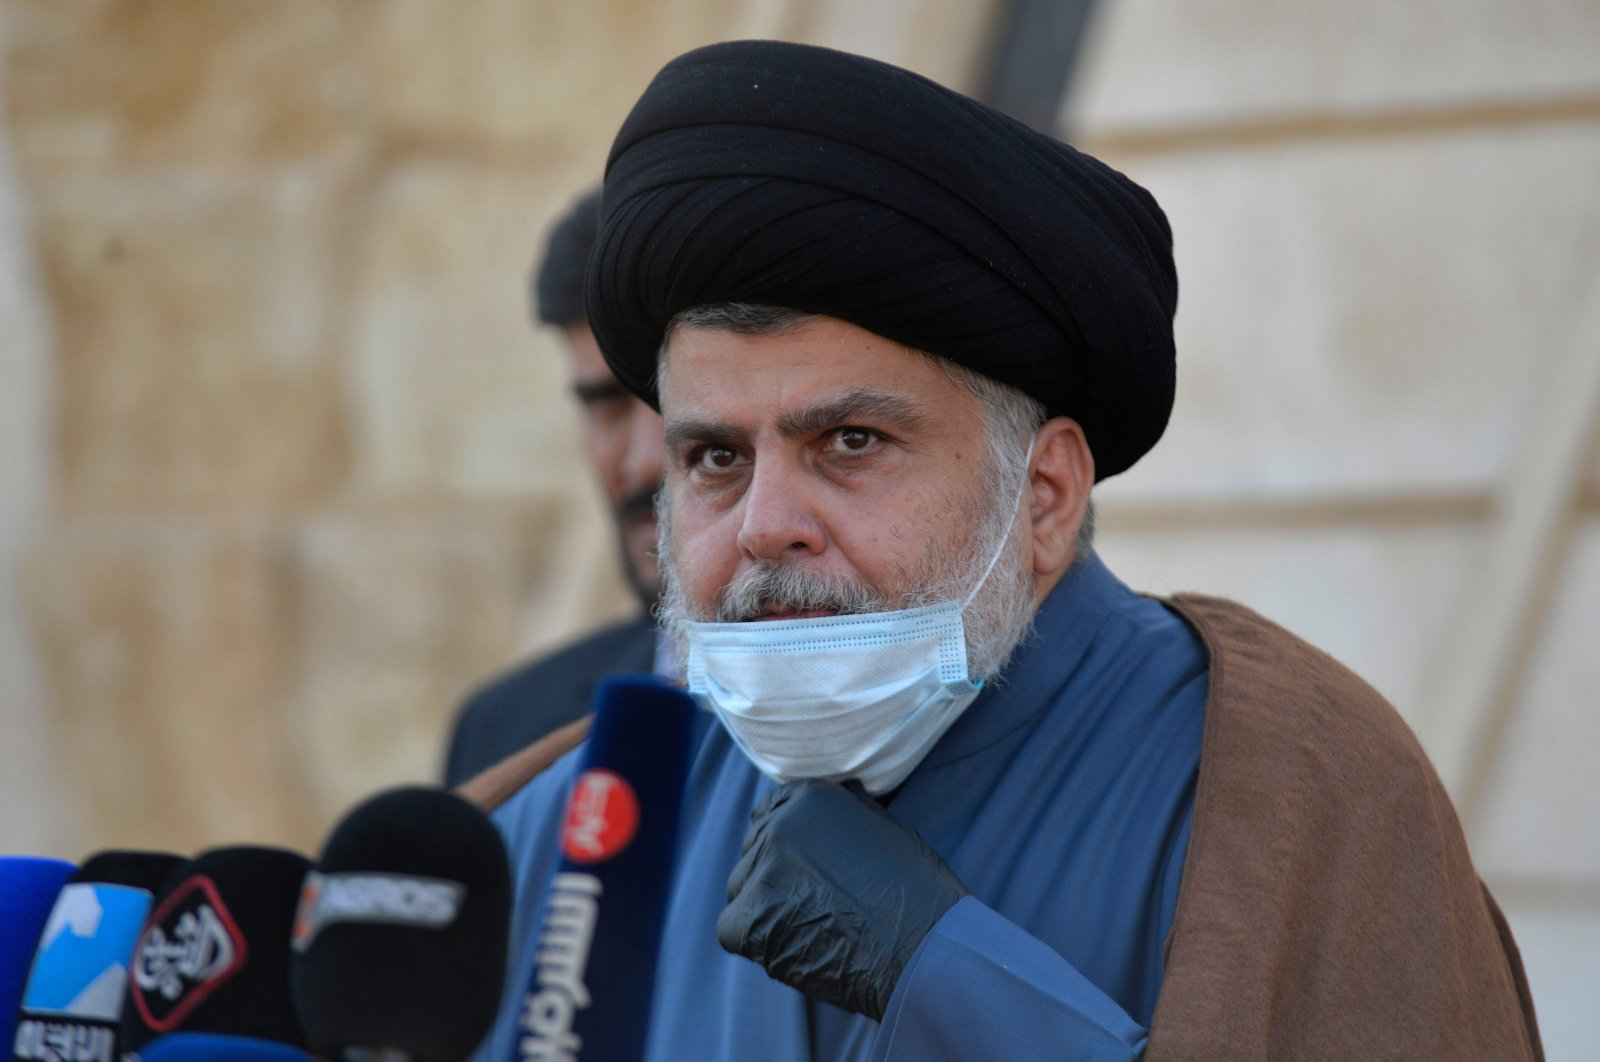 Iraqi cleric Moqtada al-Sadr delivers a statement in support of the early elections outside of his home in Iraq's holy city Najaf, on Feb.10, 2021. (AFP Photo)